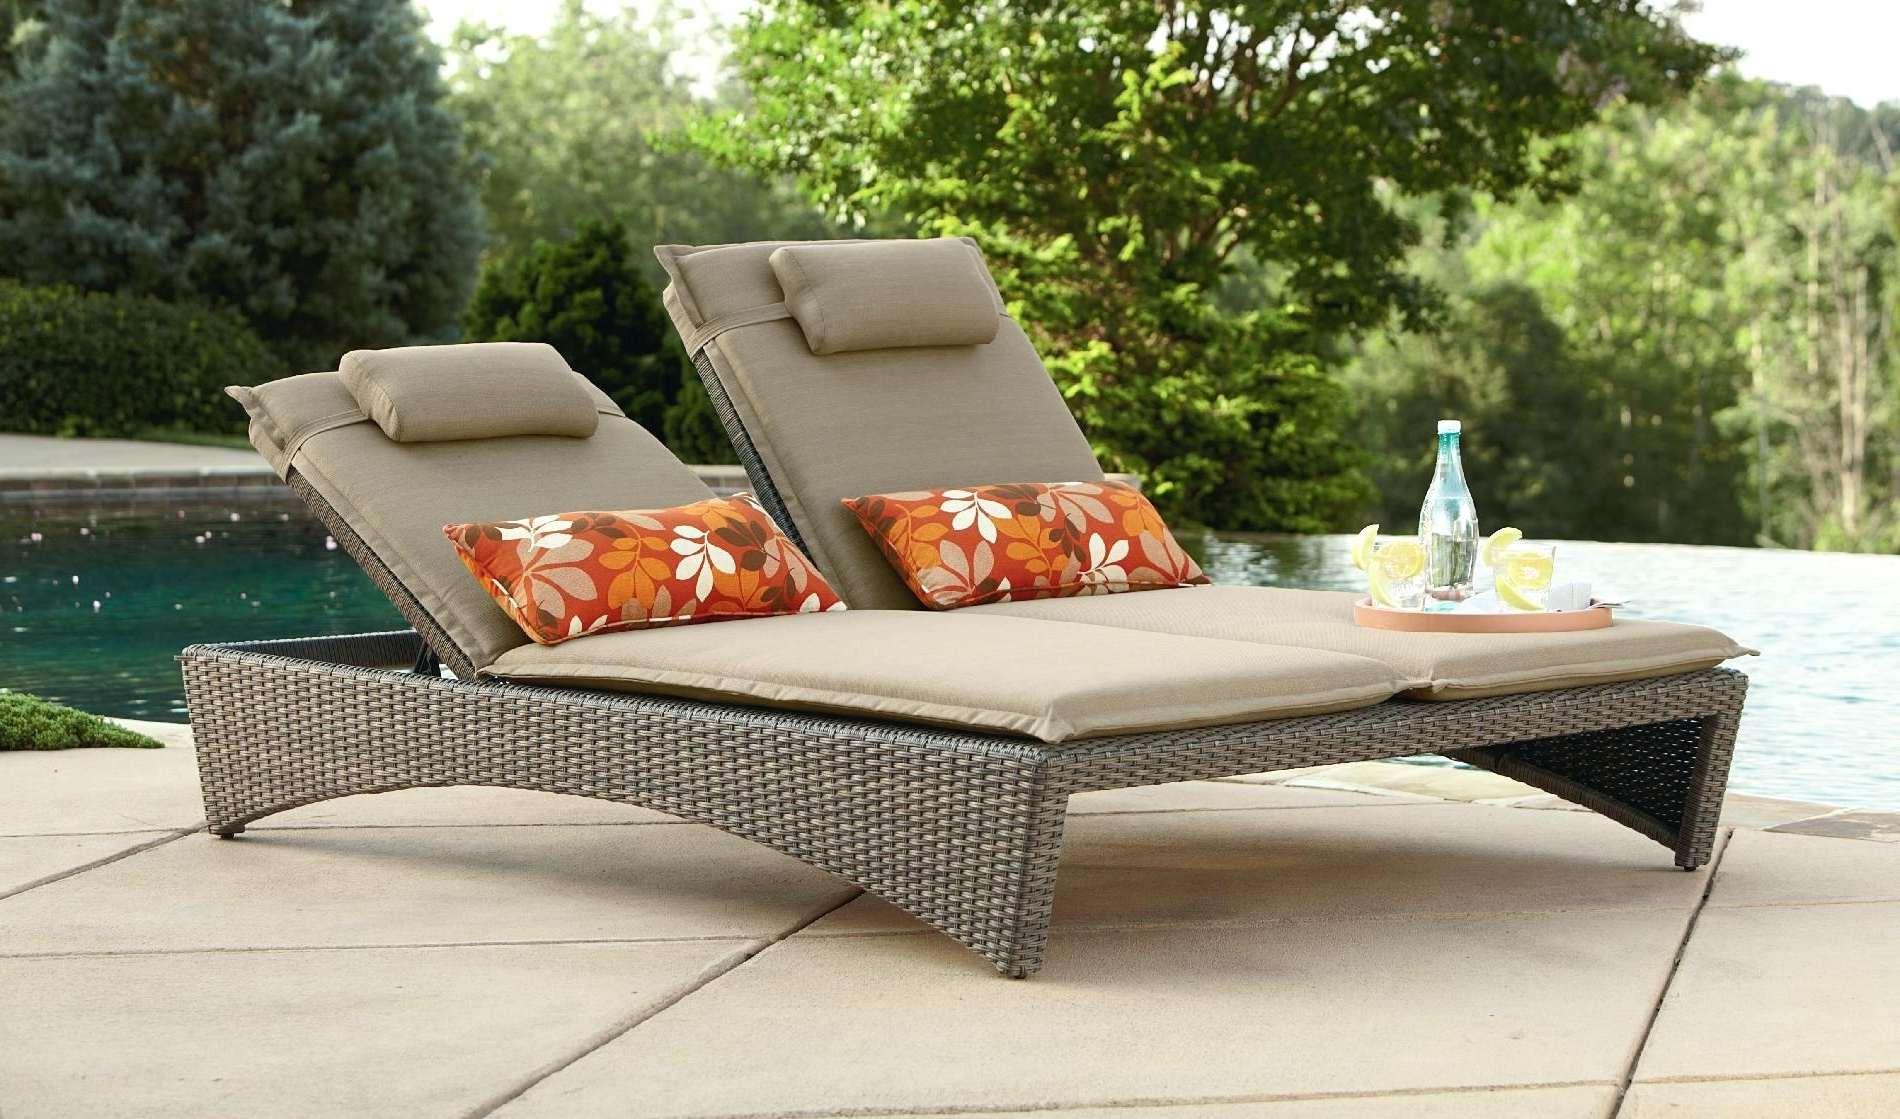 Popular Outdoor Chaise Lounge Chairs Under 100 Awesome Chair For Two For Outdoor Chaise Lounge Chairs Under $ (View 6 of 15)